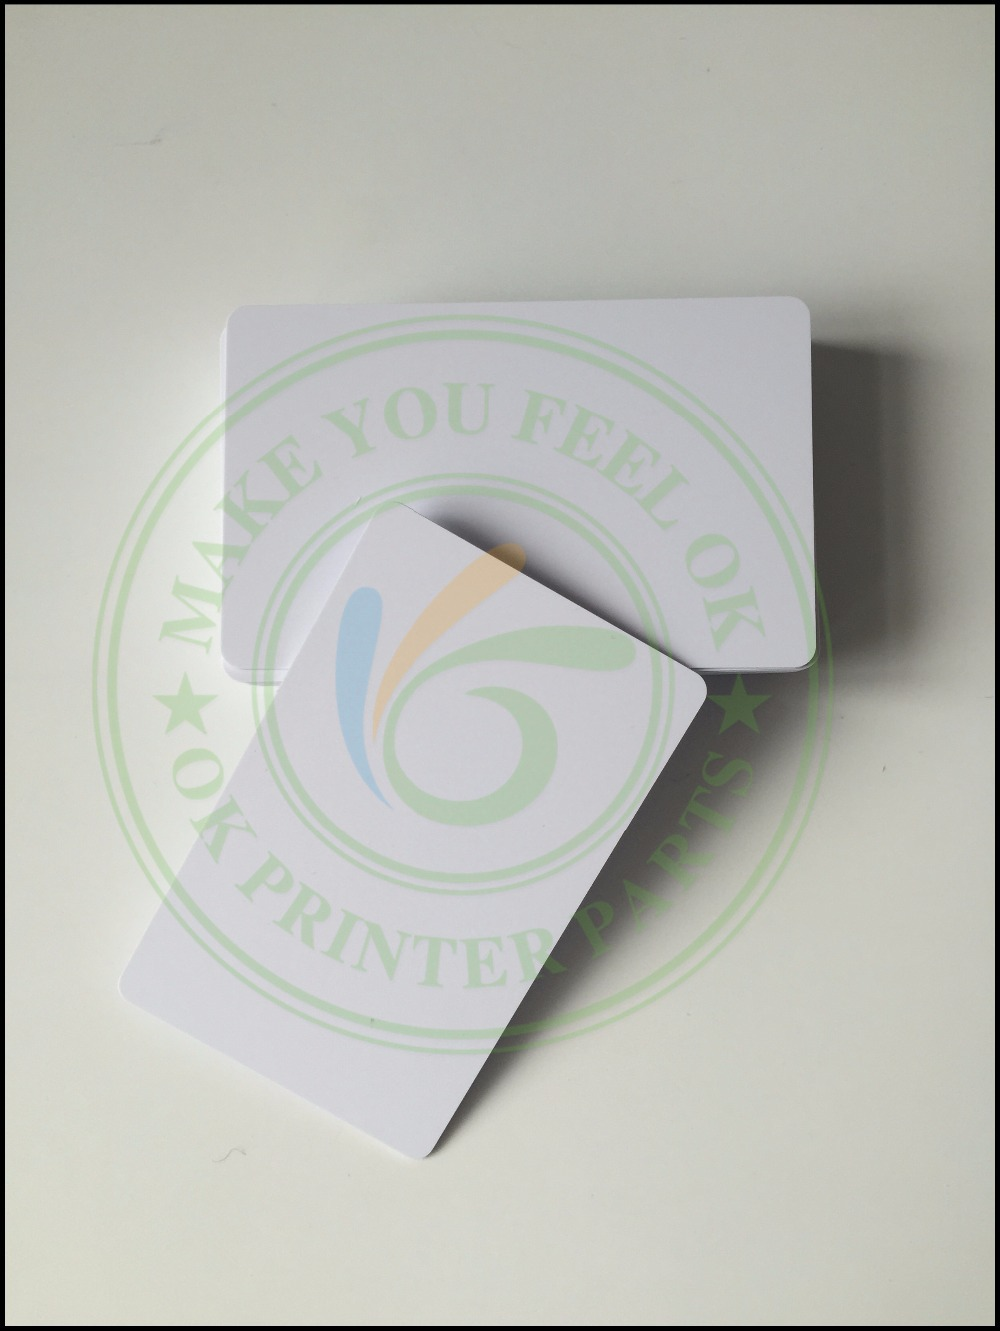 glossy White Blank inkjet printable PVC Card Waterproof plastic ID Card business card no chip for Epson for Canon Inkjet printer directly printing inkjet blank pvc card for epson printer r265 r310 r320 r350 r390 double side printable pvc id cards 230pcs box